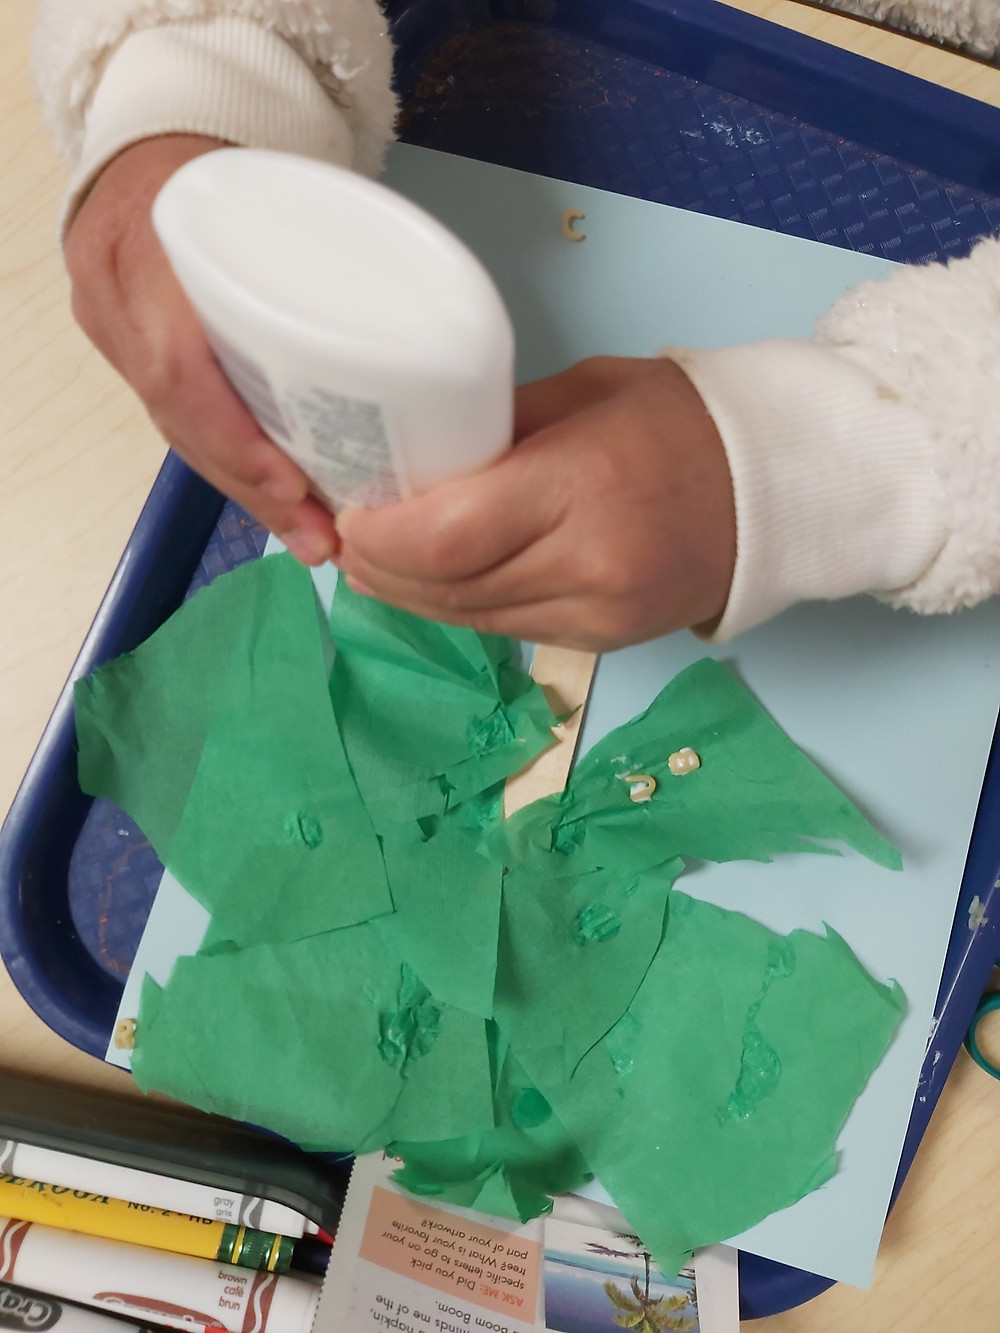 preschooler adding glue to coconut tree craft